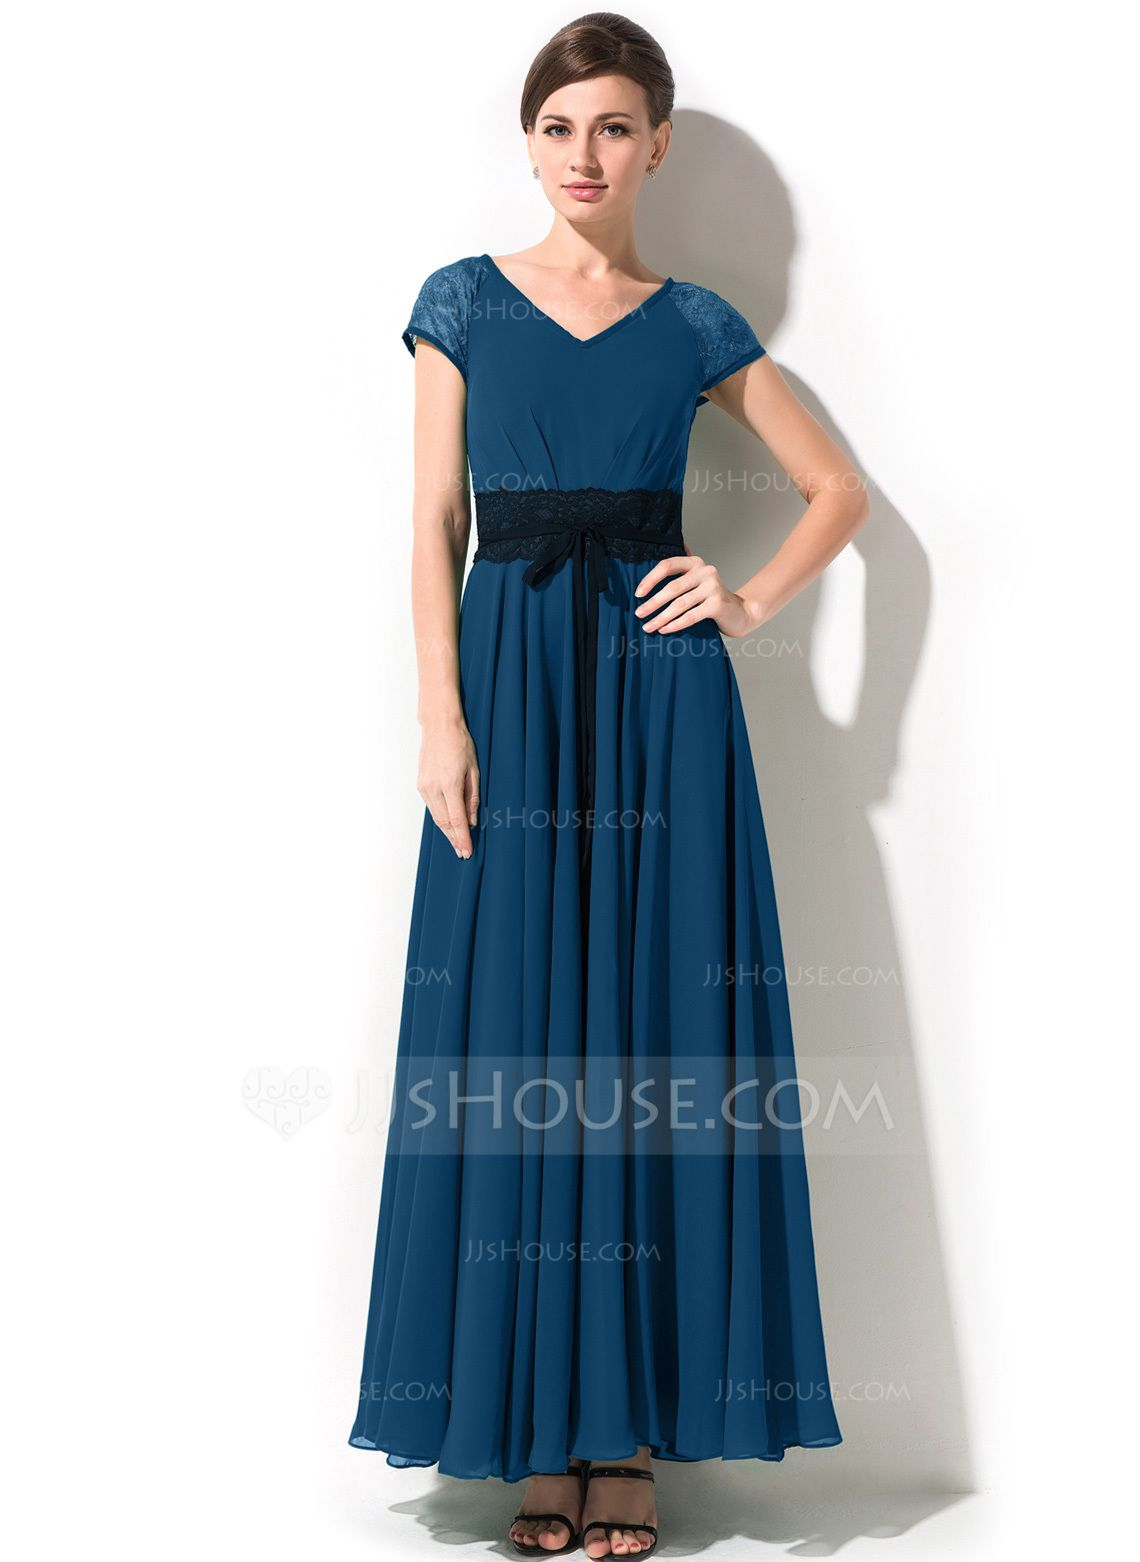 9167ede9b73 A-Line Princess V-neck Ankle-Length Chiffon Mother of the Bride Dress With  Bow(s) (008042825) - Mother of the Bride Dresses - JJsHouse